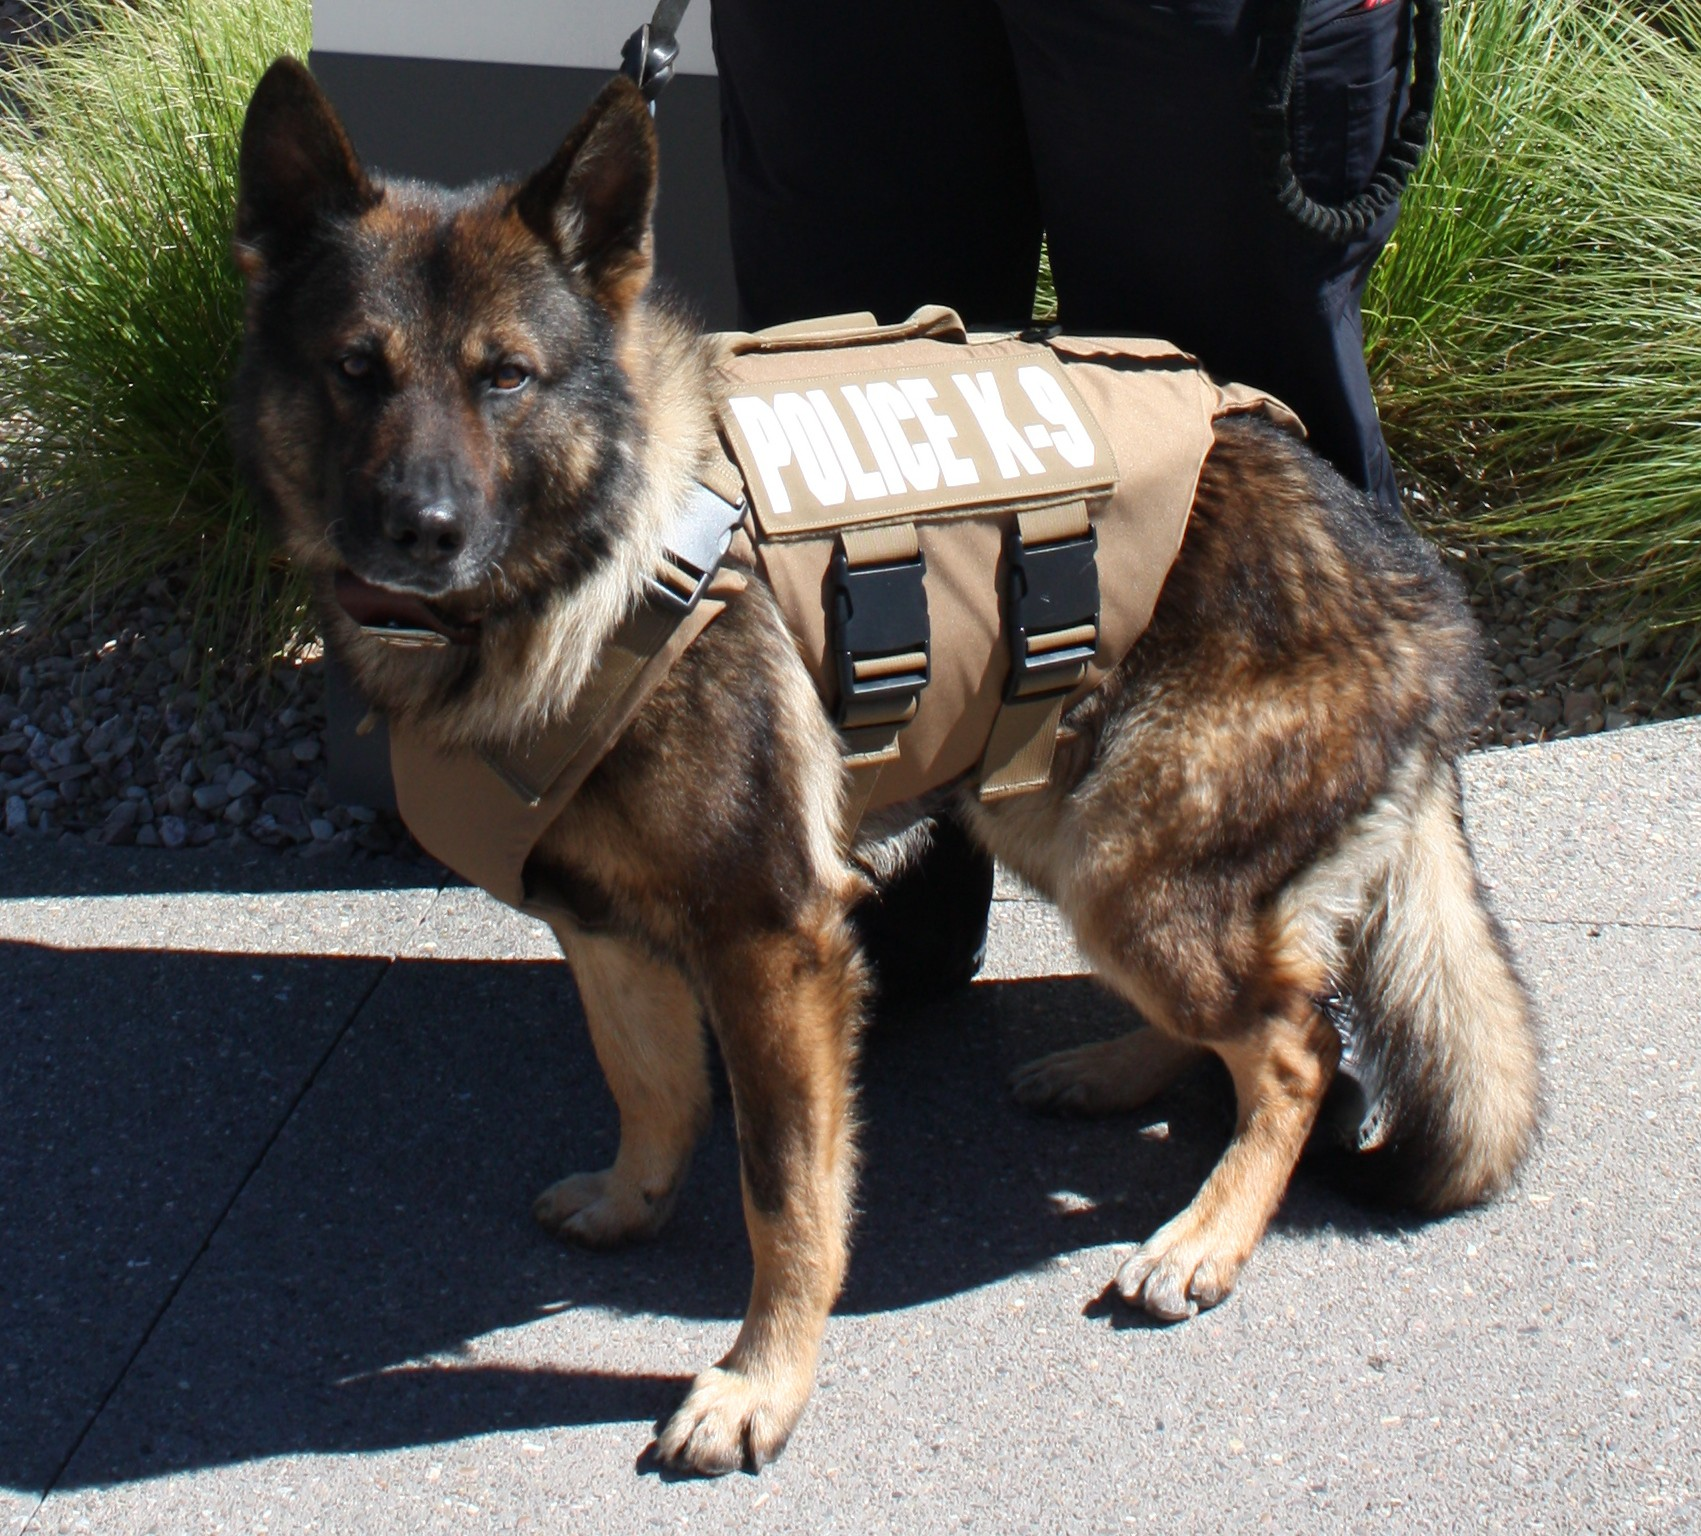 k9 in law enfocement Dogs have been part of law enforcement for centuries police dogs: just the facts departments with k9 units may encourage officers and their police dogs to.